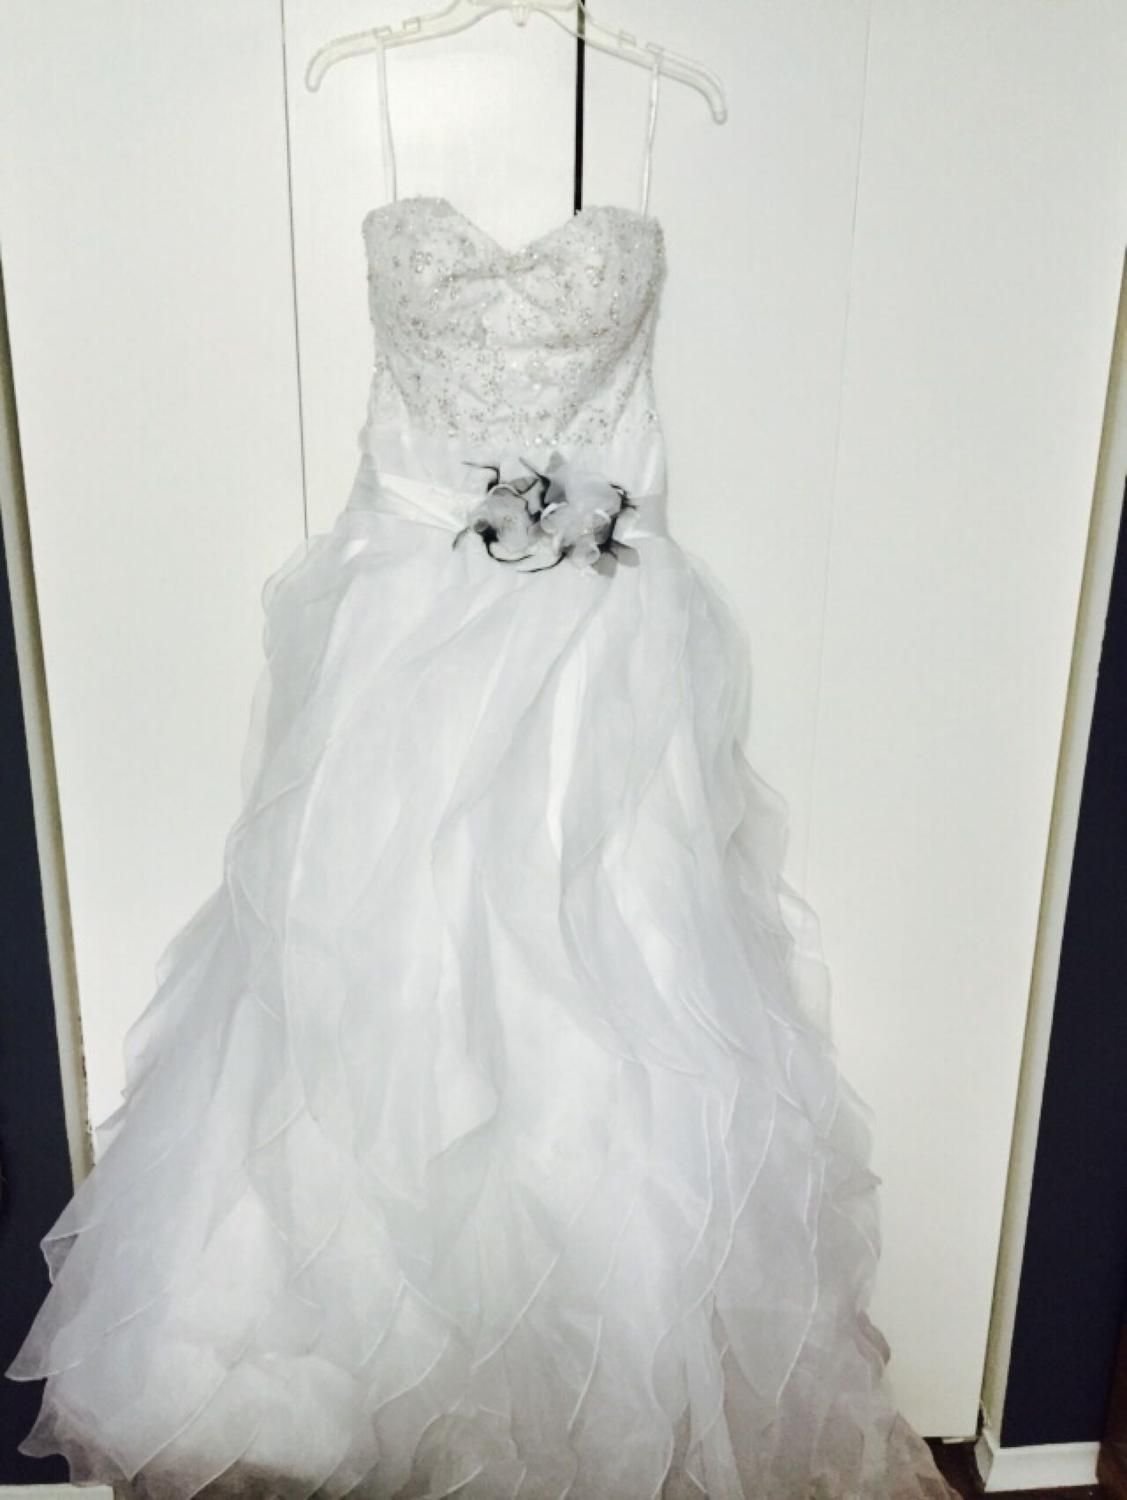 Euc Stella York Wedding Gown Size 10 Price Drop Now 200 As Is Without Professional Cleaning Wedding Gown Sizes Stella York Wedding Gowns Ball Gown Dresses